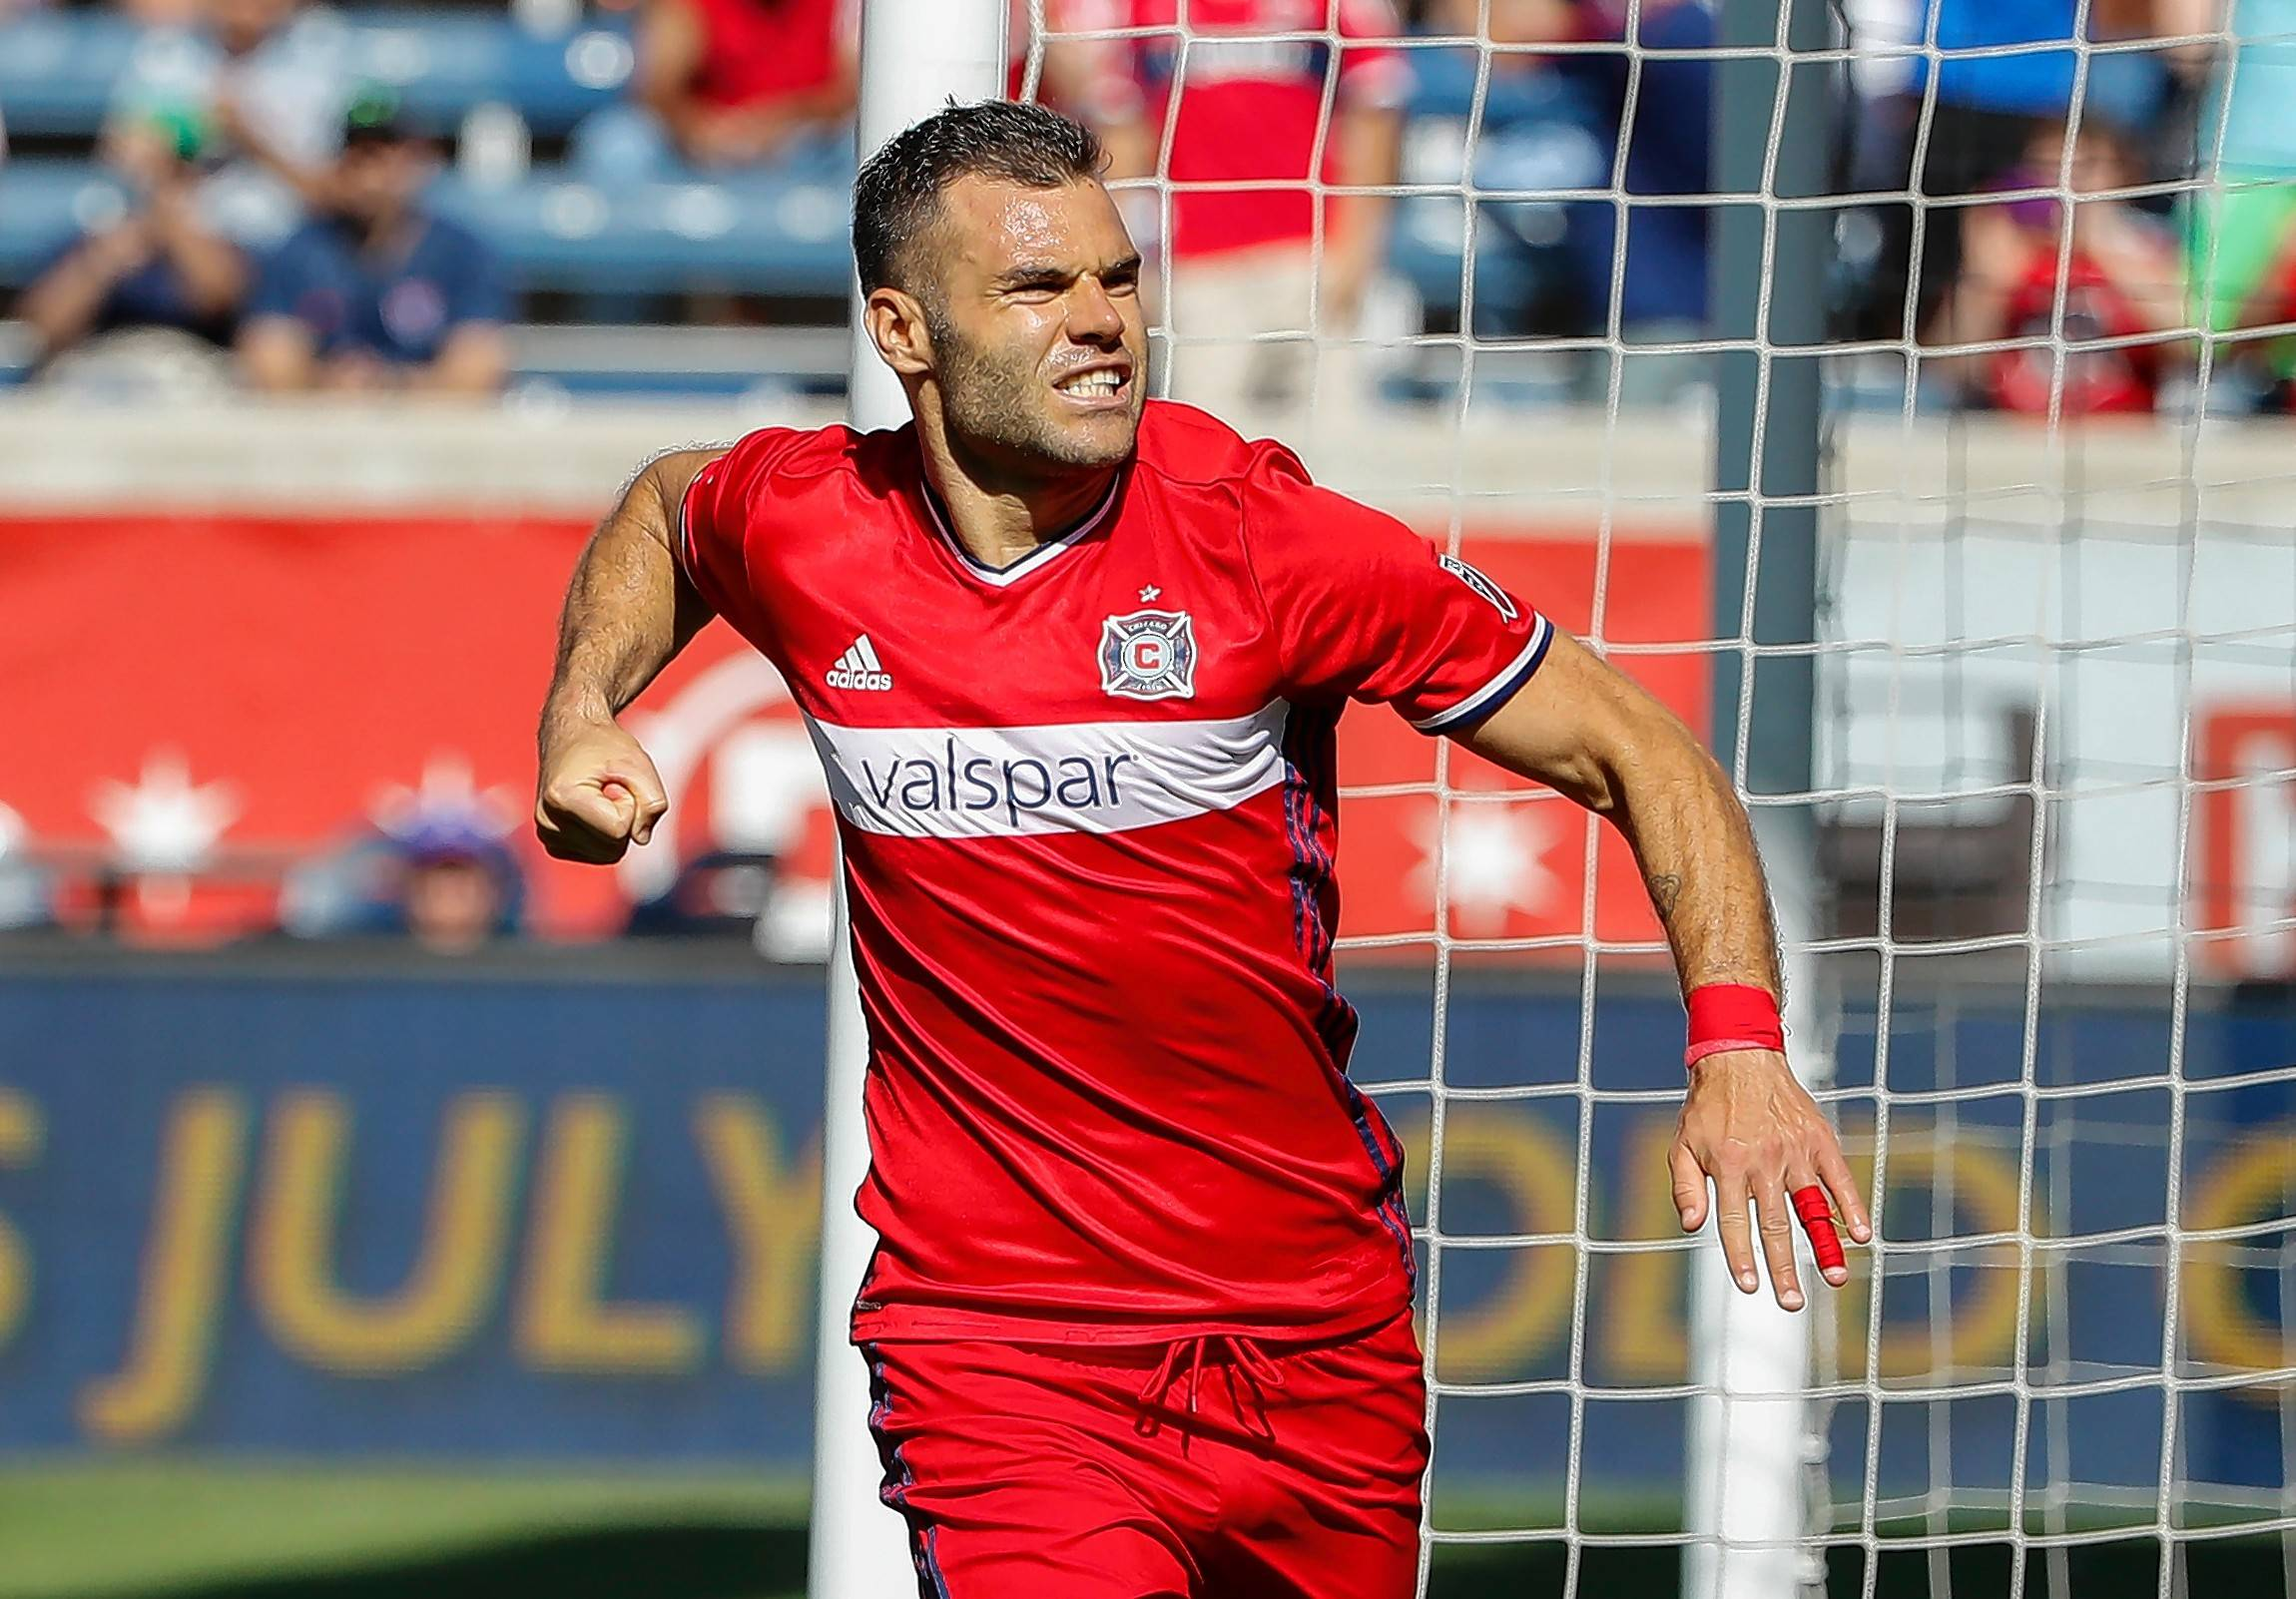 Chicago Fire forward Nemanja Nikolic celebrates after scoring on a penalty kick against Atlanta United goalkeeper Alec Kann during the second half of an MLS match in June at Toyota Park in Bridgeview.